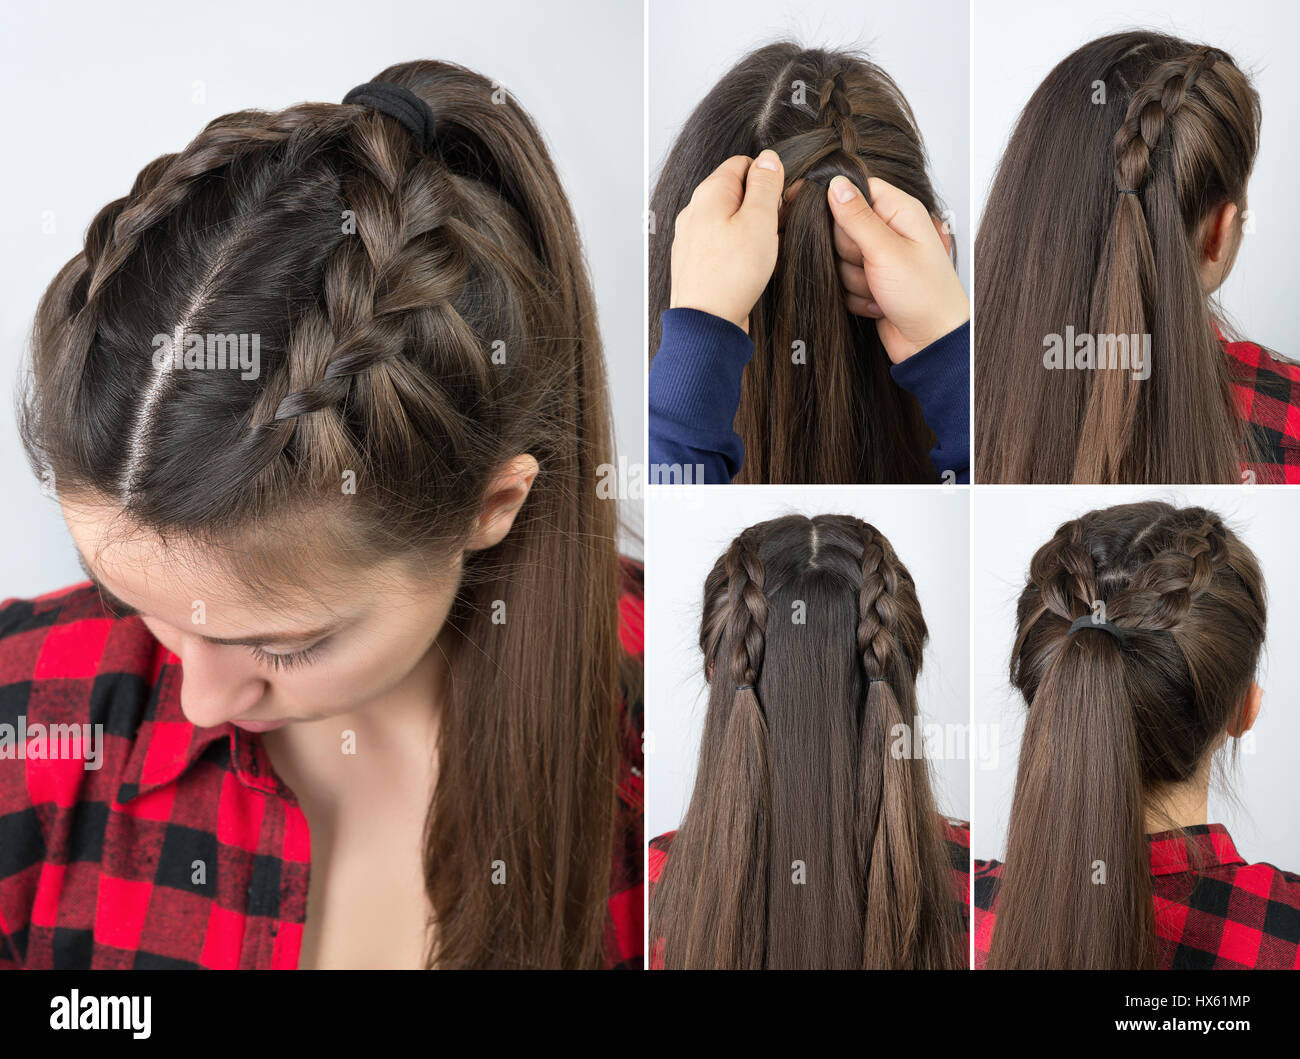 simple braided hairstyle tutorial step by step. Easy hairstyle for